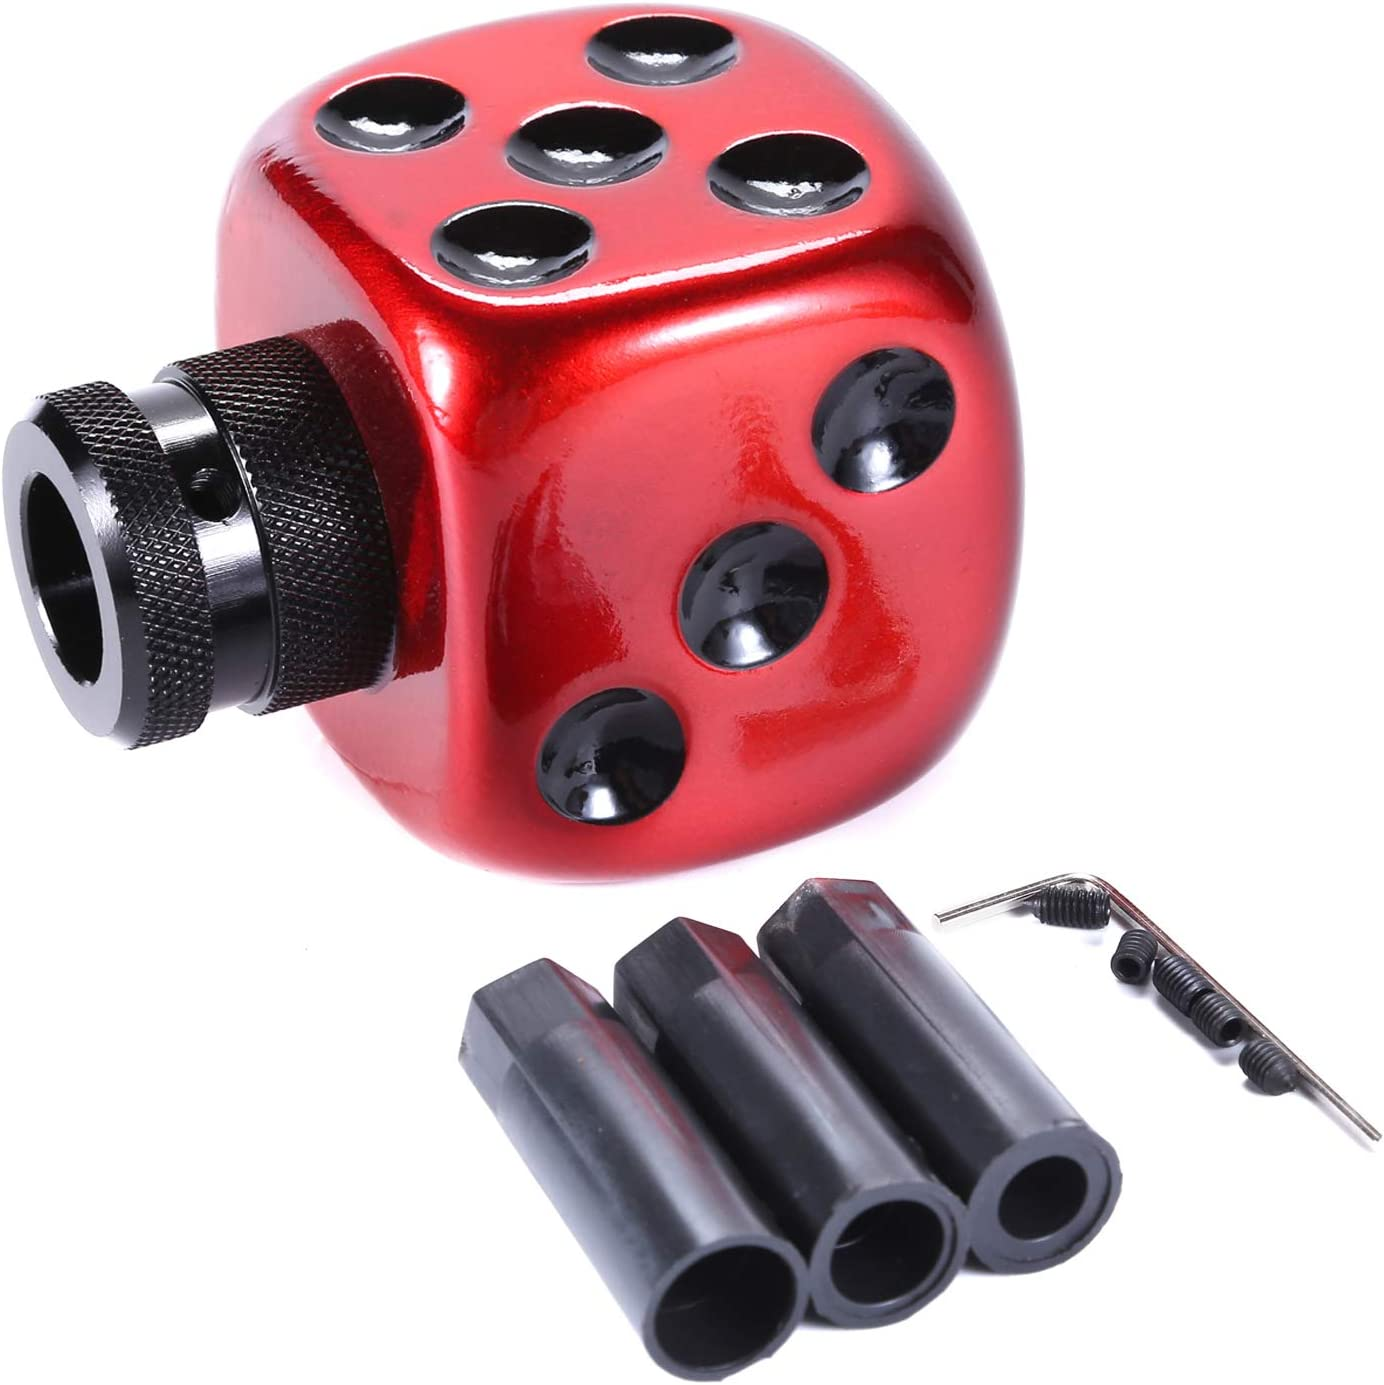 Red Bashineng Gear Knob Head Dice Style Stick Shift Shifter for Most Manual Automatic Cars